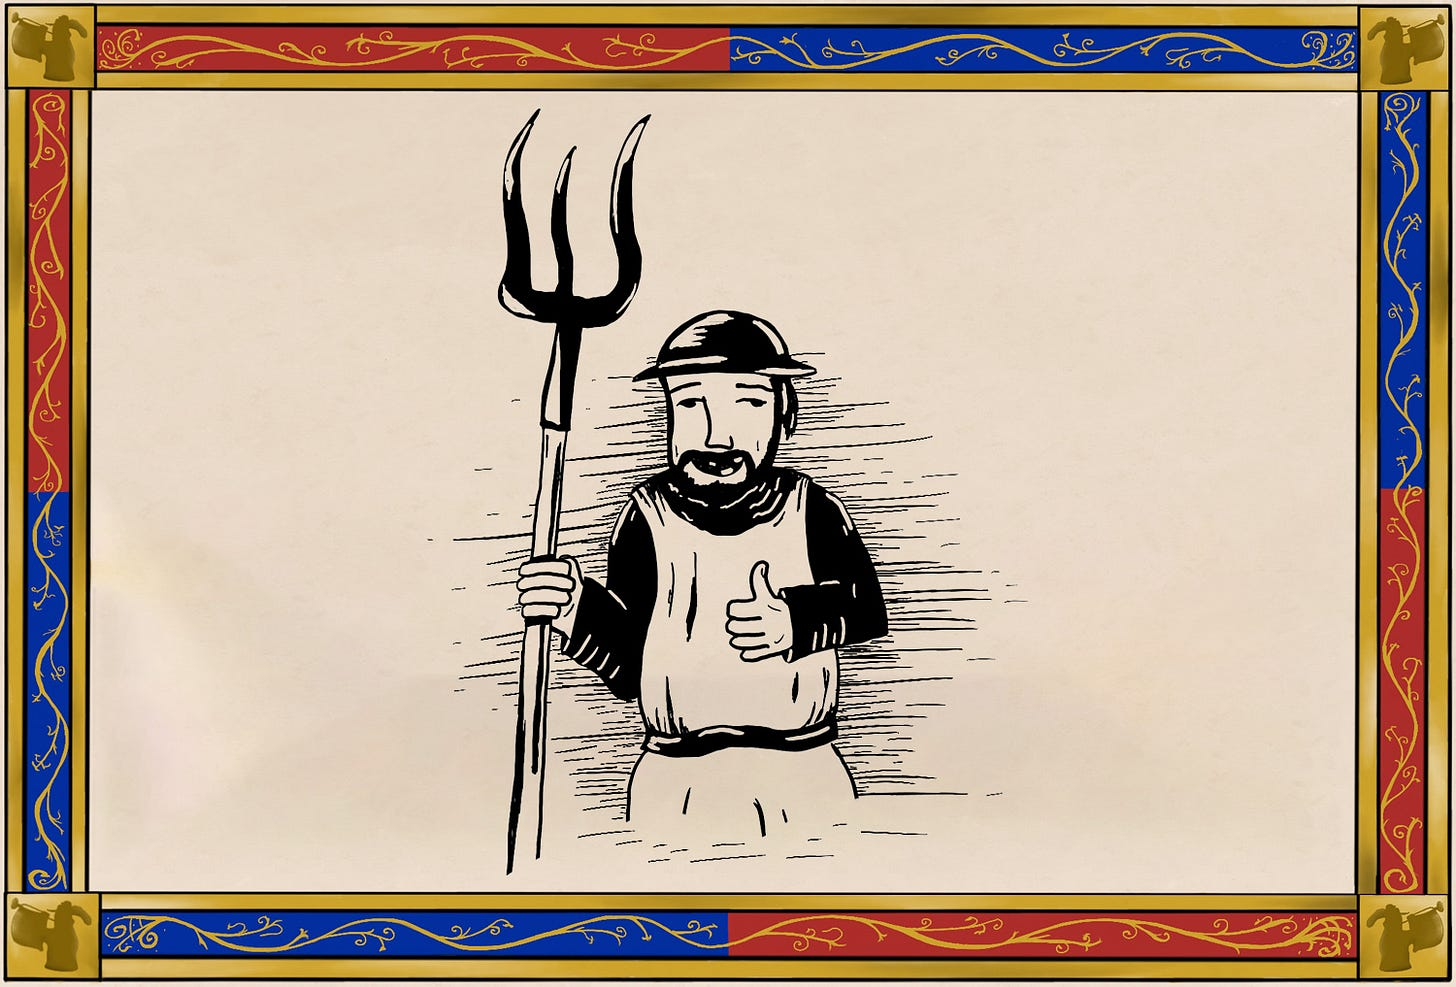 medieval soldier with pitchfork giving thumbs up